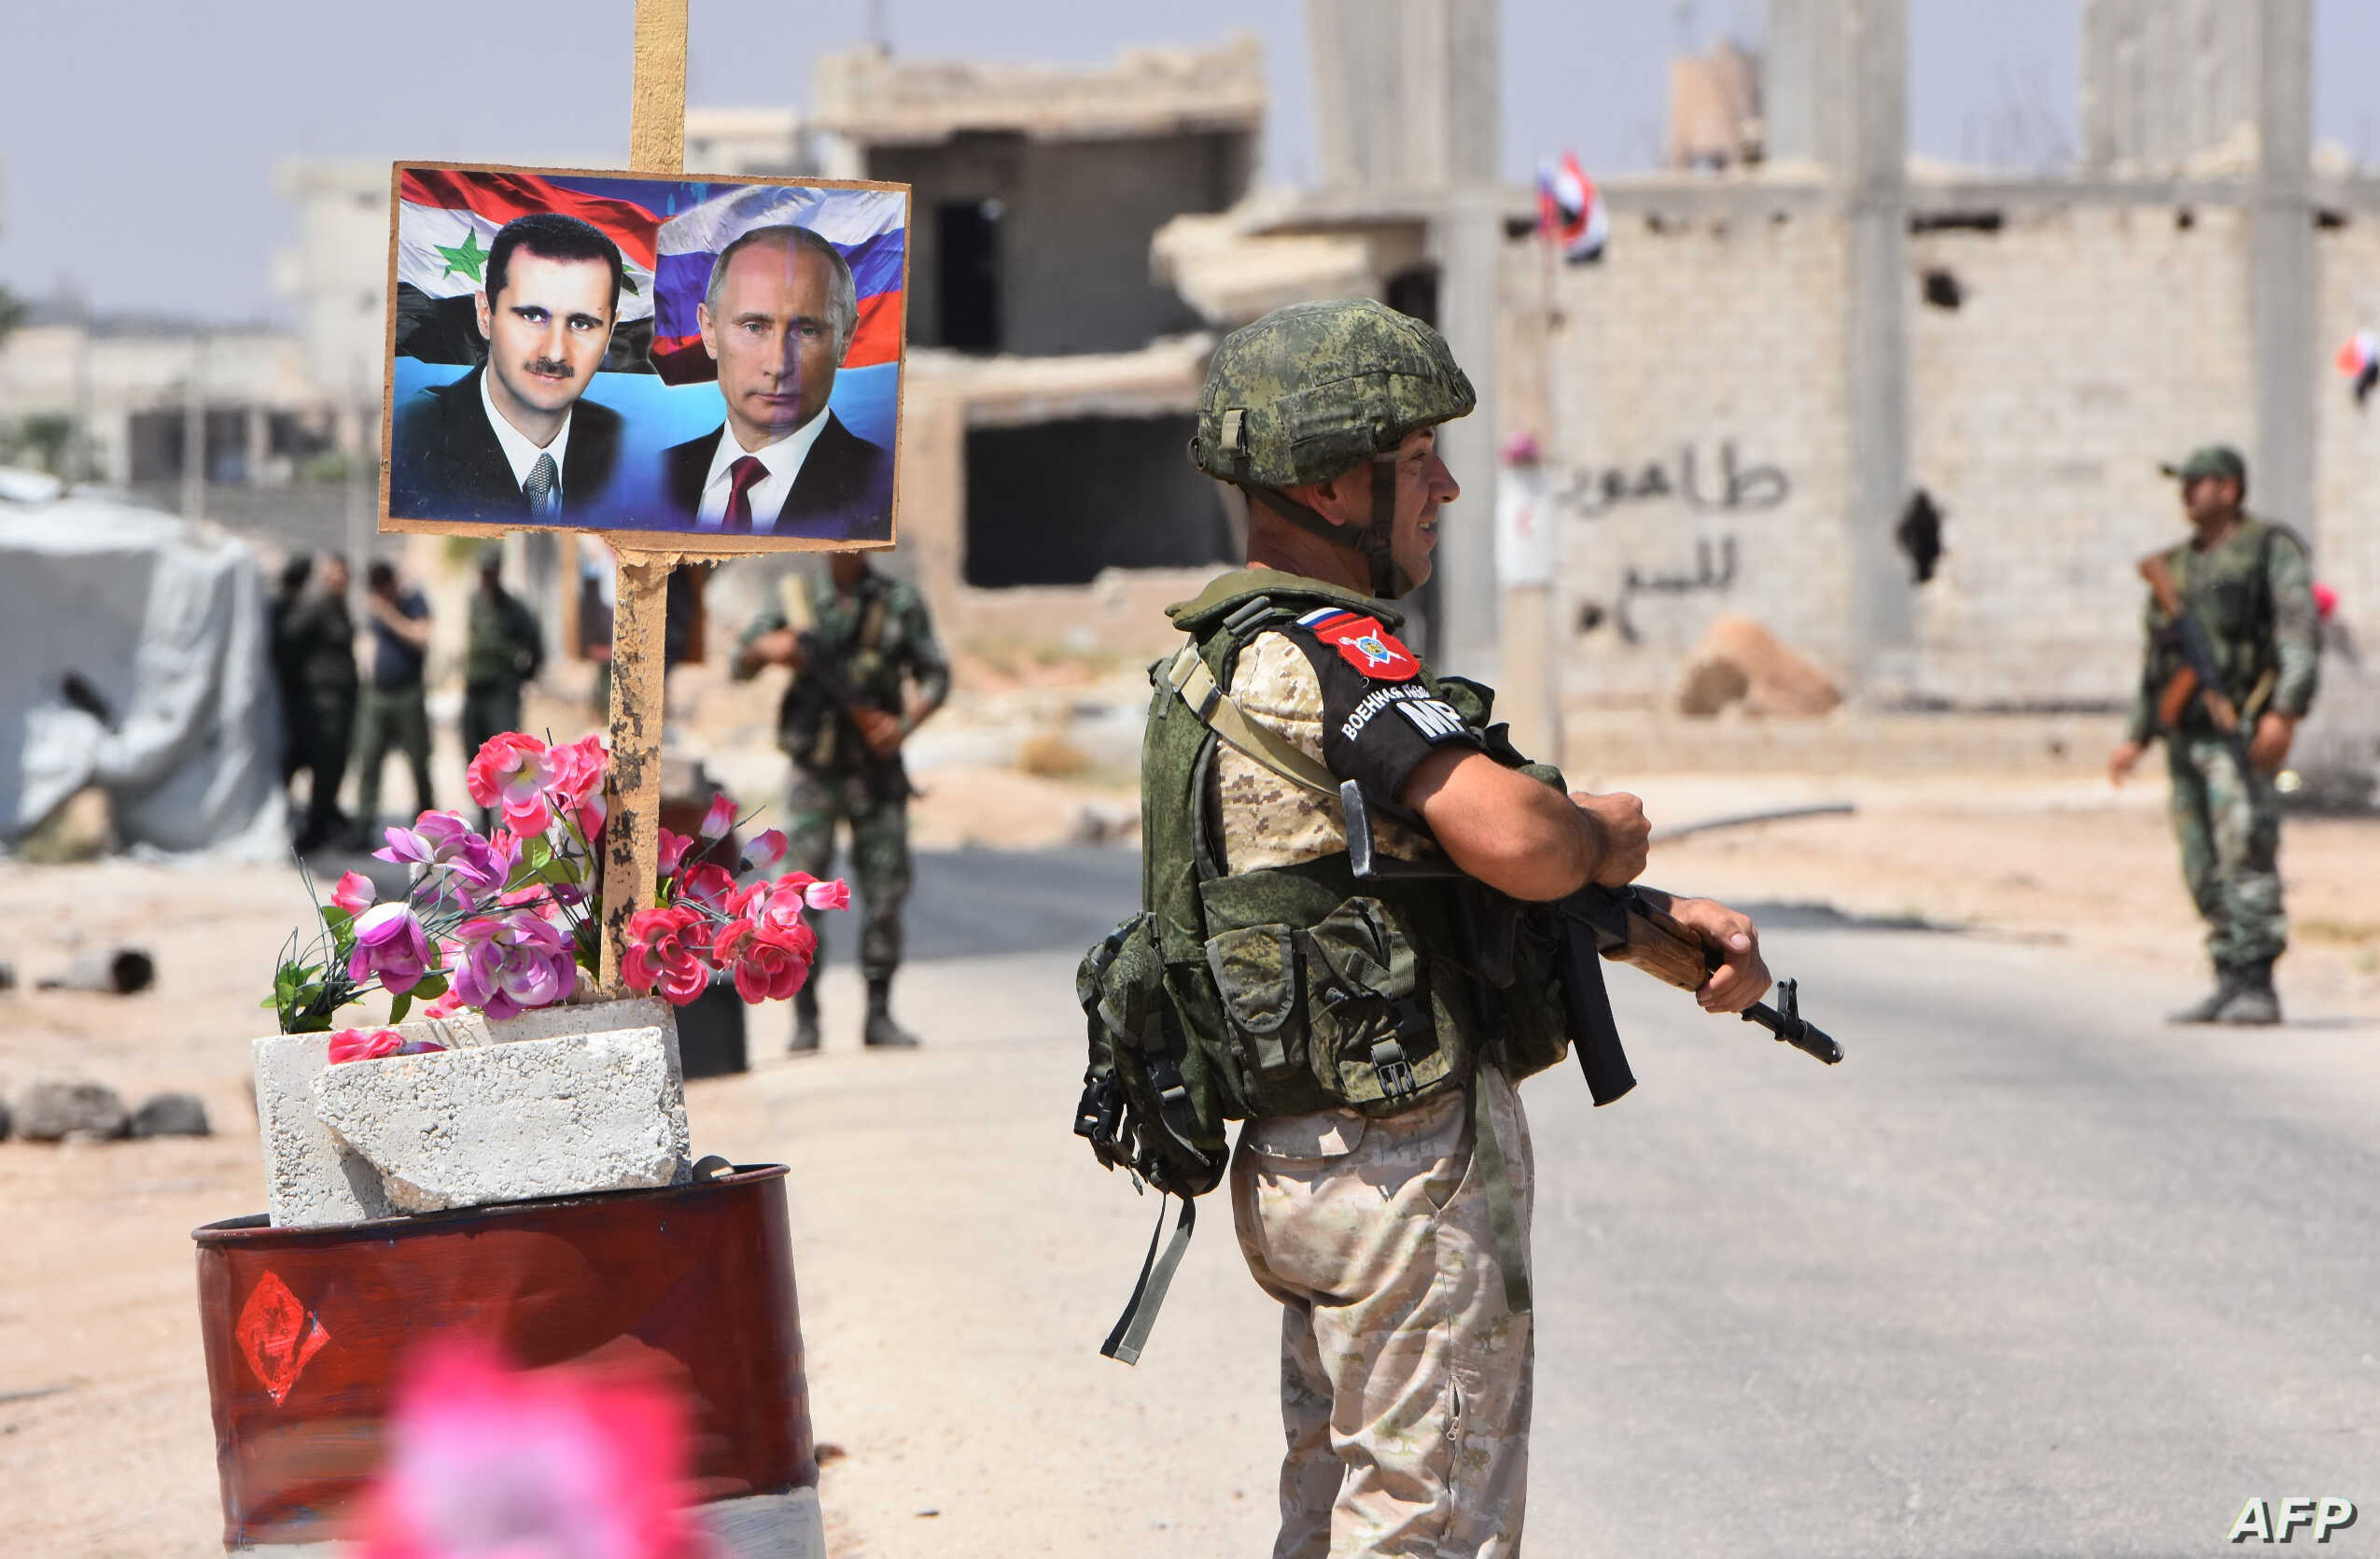 Members of Russian and Syrian forces stand guard near posters of Syrian President Bashar al-Assad and his Russian counterpart Vladimir Putin at the Abu Duhur crossing on the eastern edge of Idlib province, Aug. 20, 2018.